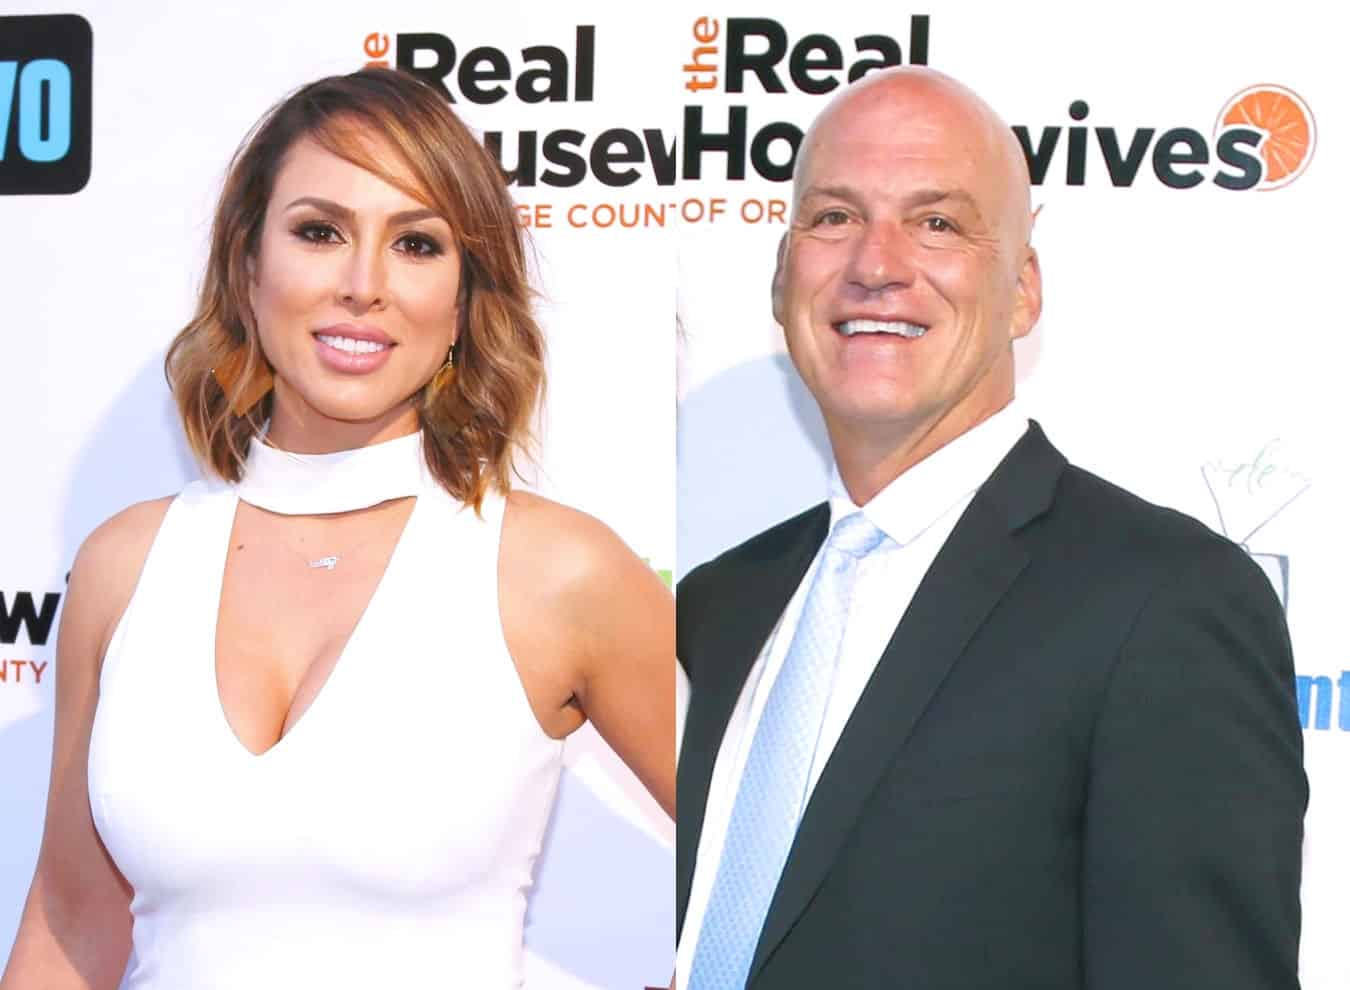 "RHOC Star Kelly Dodd Leaks Text Messages From Ex Michael Dodd Amid Their Custody Battle Over Daughter, Alleges He ""Doesn't Want to See Her"" and Shares Text From Michael's Girlfriend Demanding She Remove Posts"